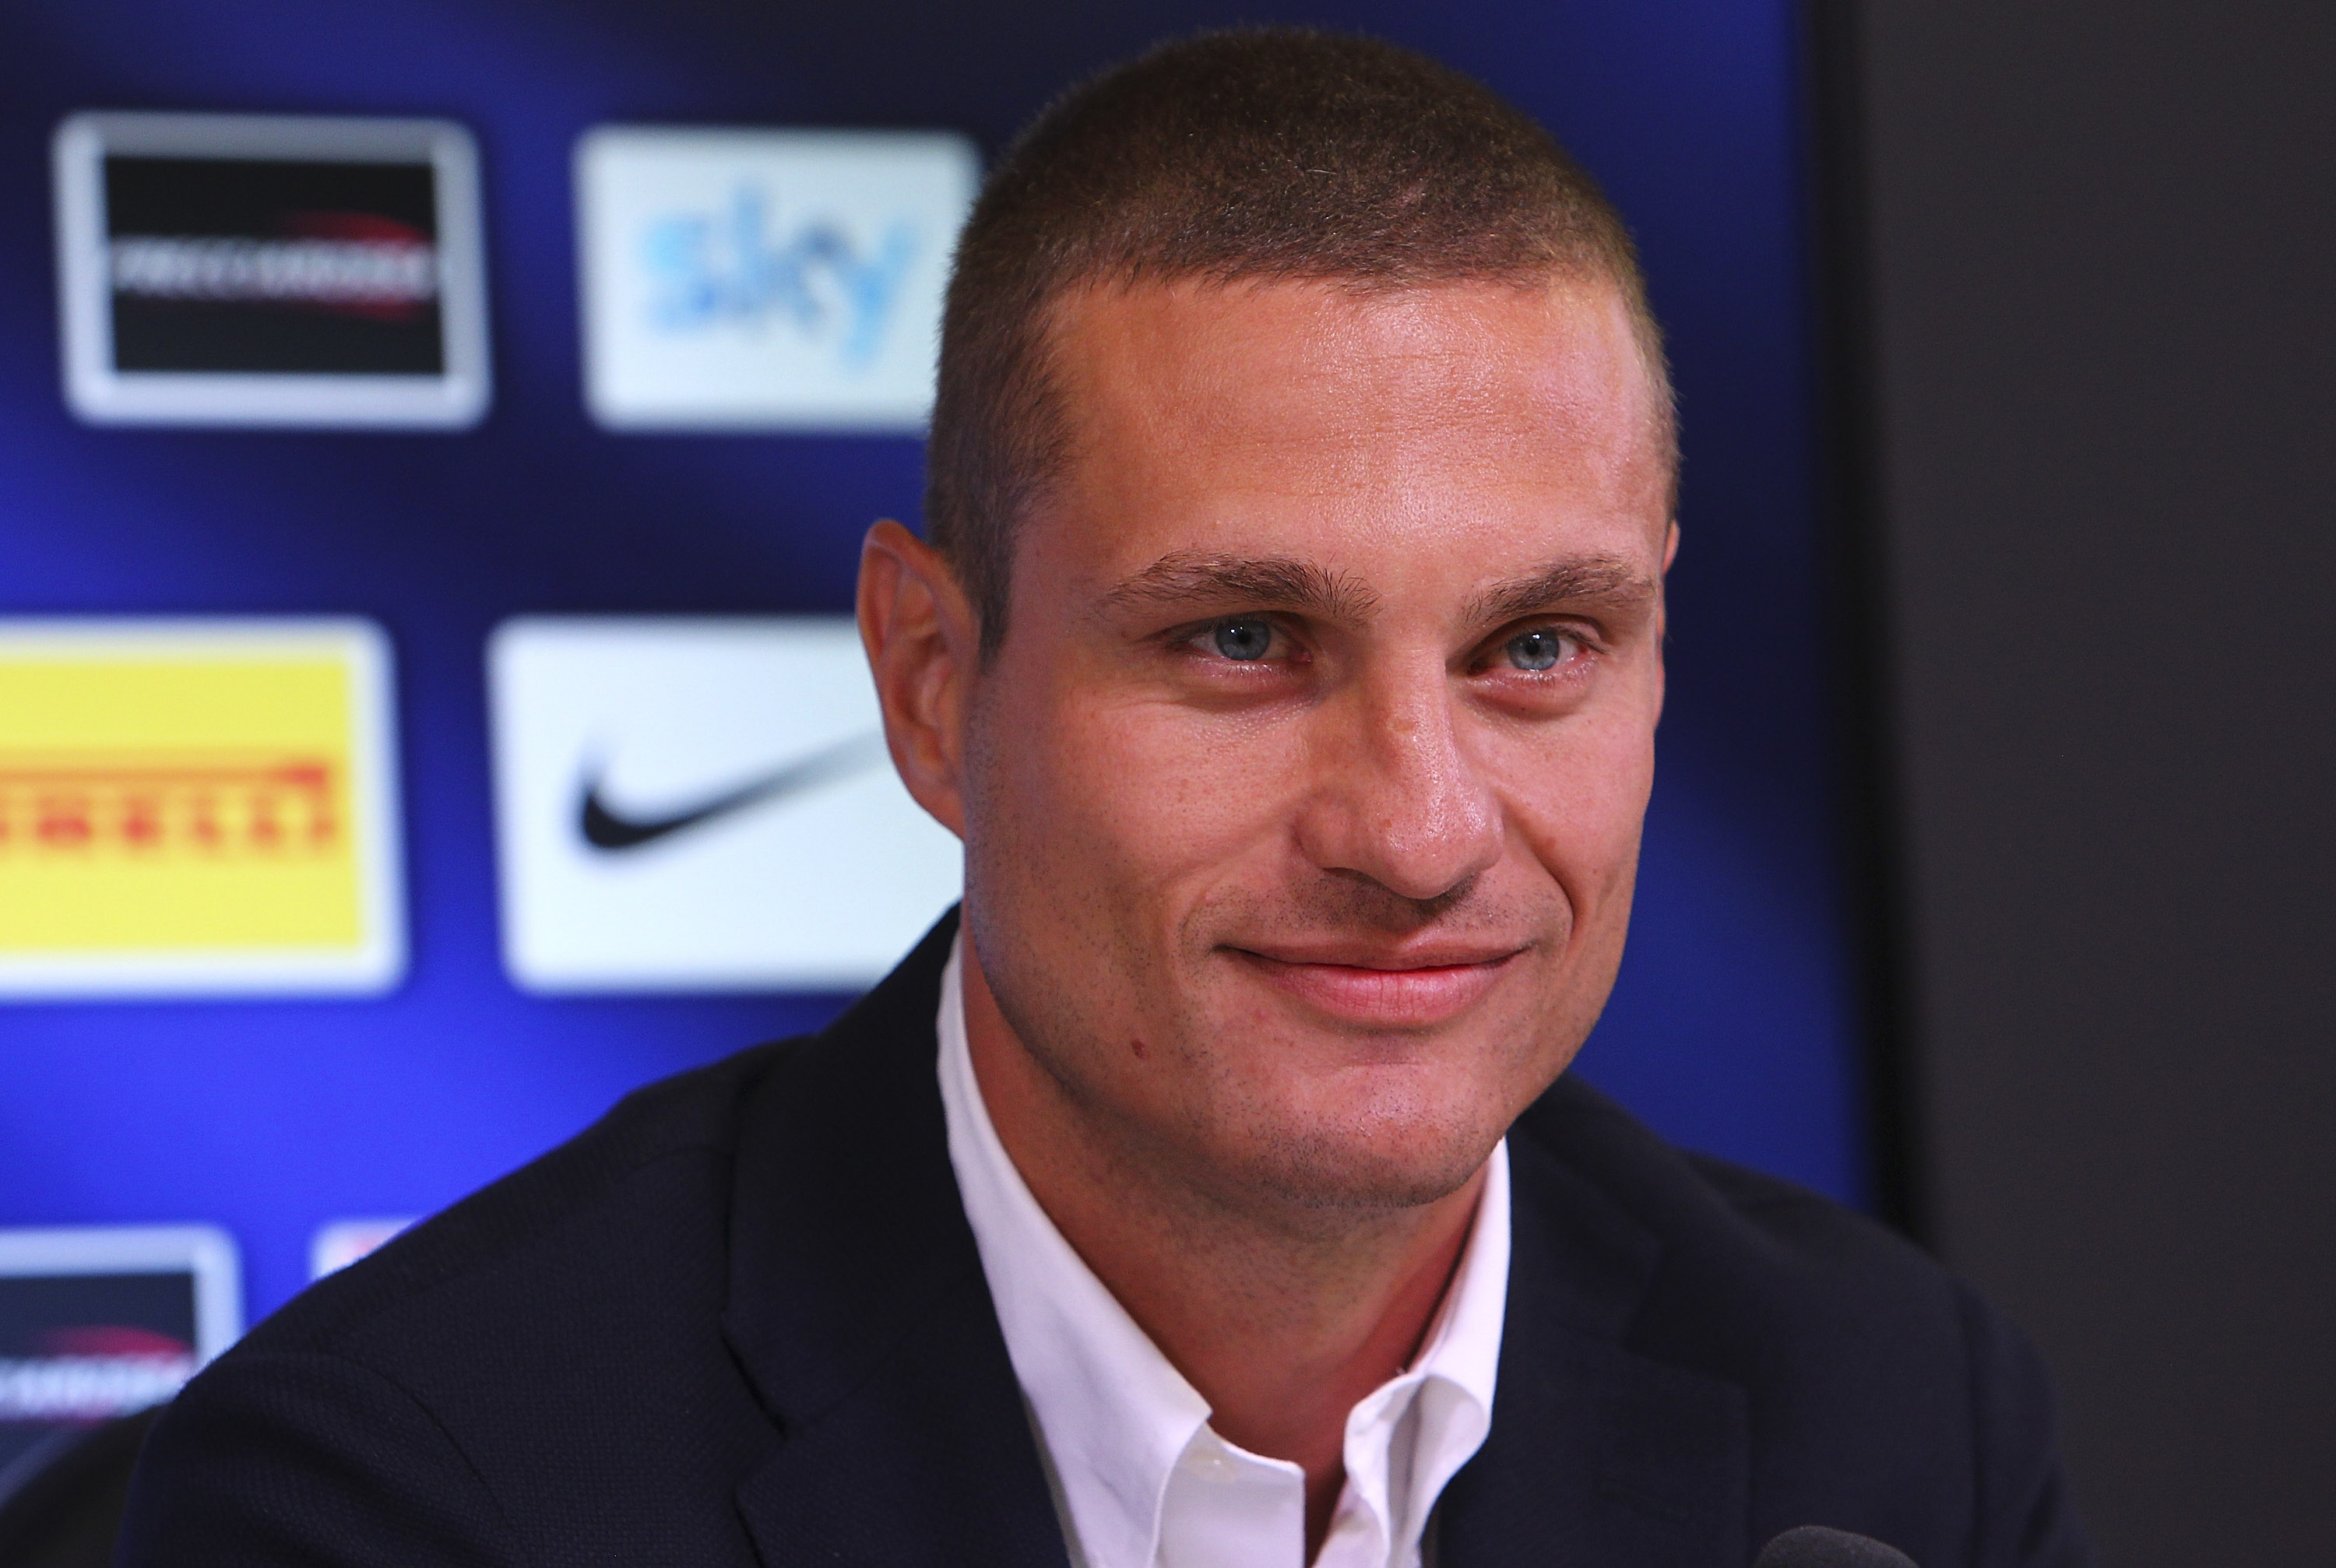 Liverpool fans call for the club to sign former Man United captain Nemanja Vidic